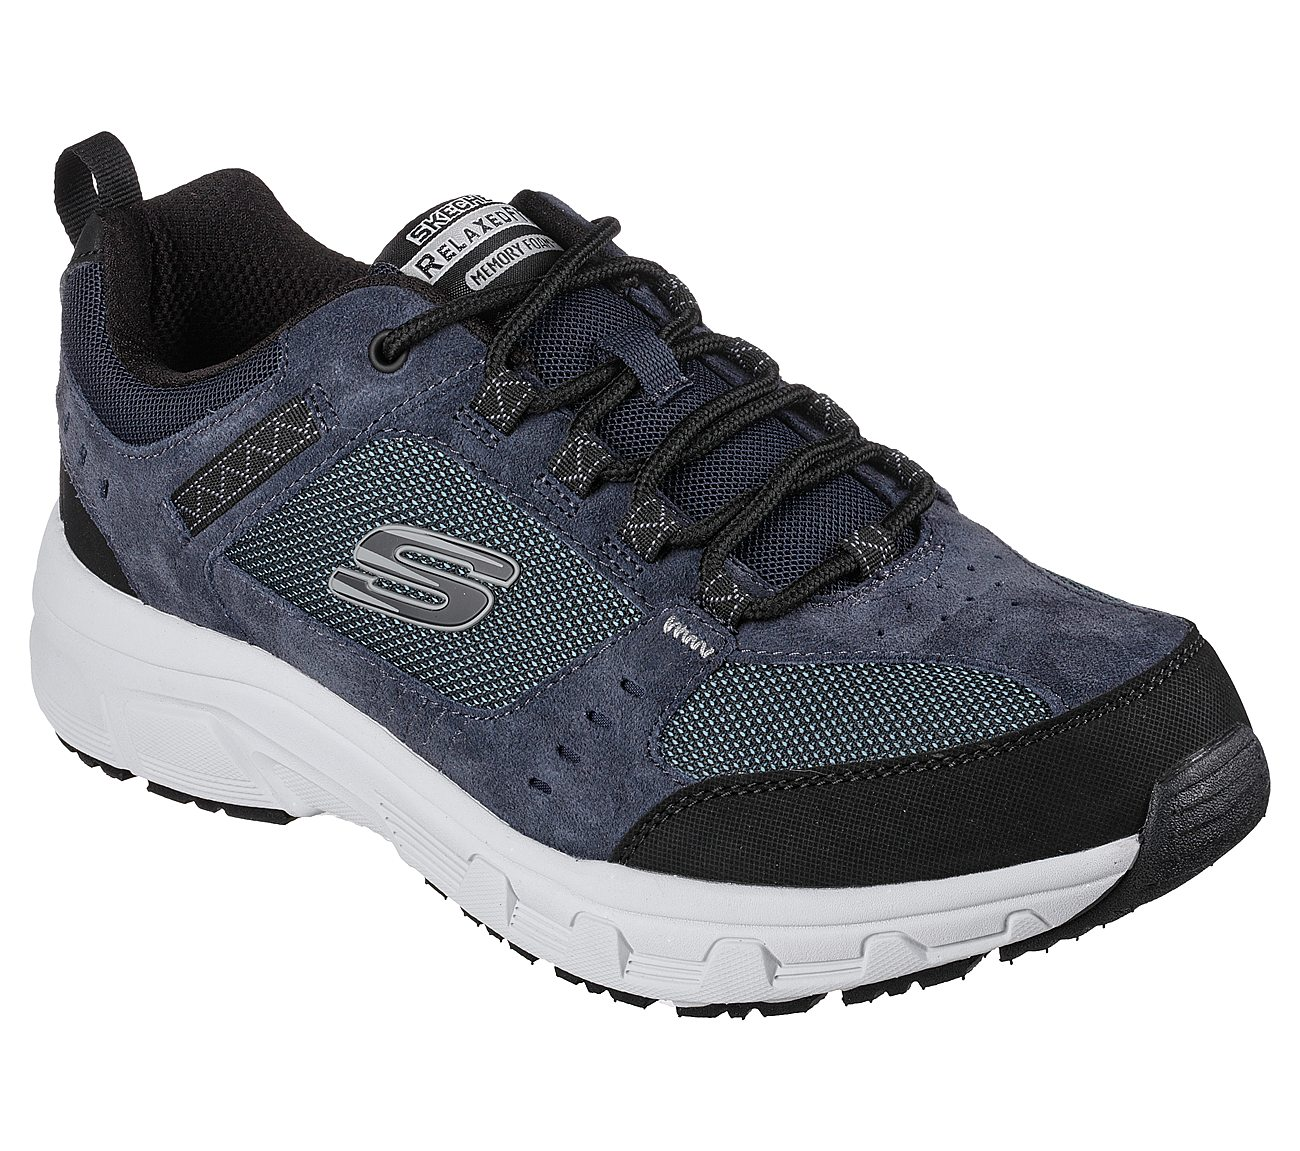 Skechers Relaxed Fit: Oak Canyon Trainers Mens Memory Foam Walking Shoes 51893